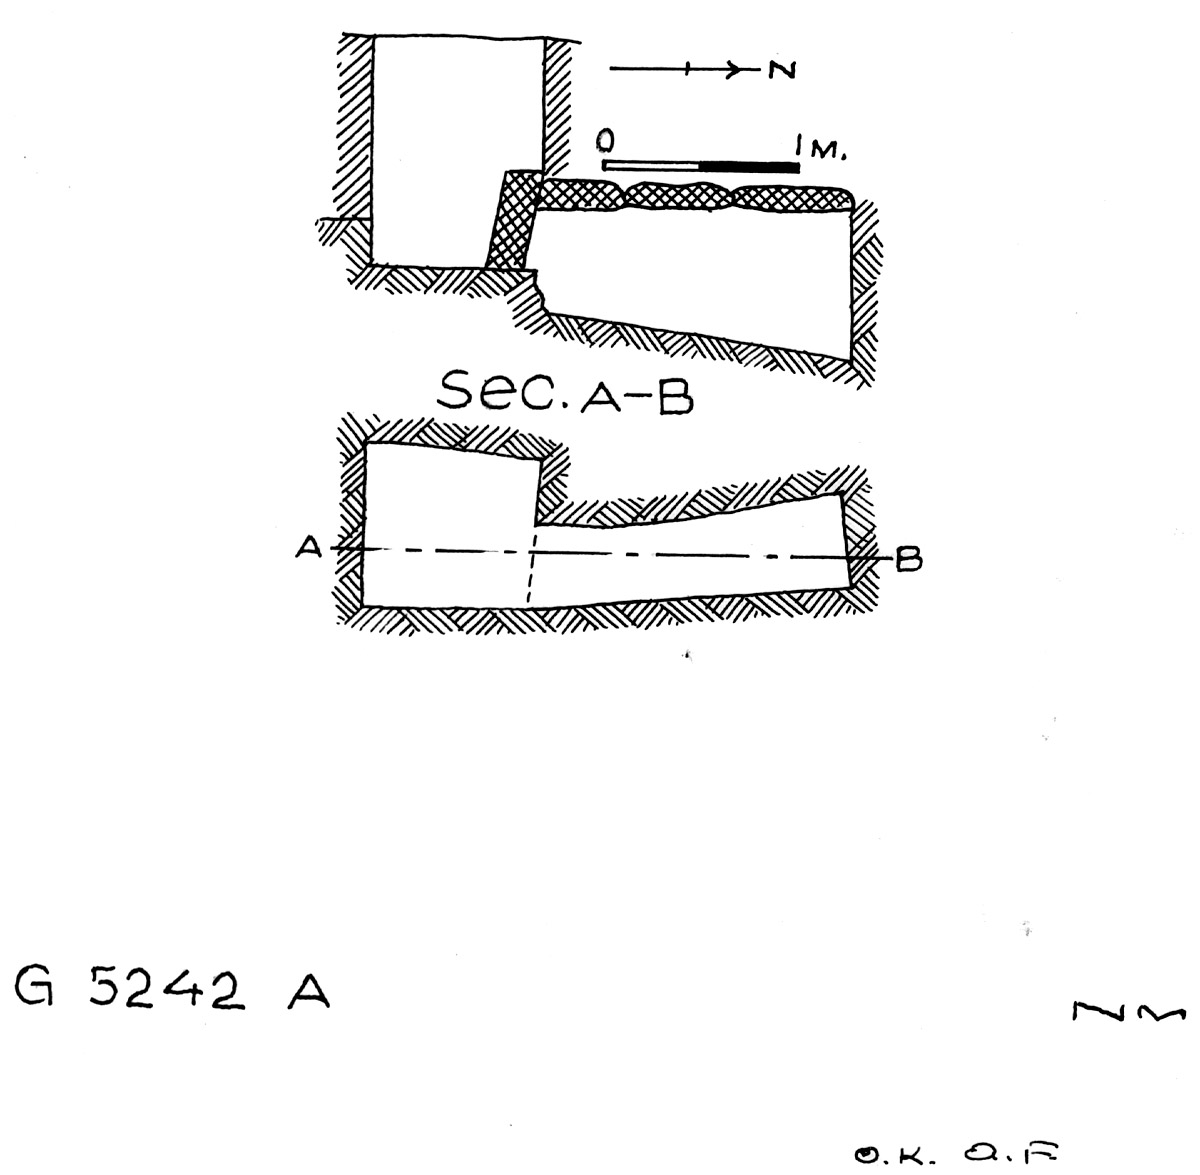 Maps and plans: G 5242, Shaft A